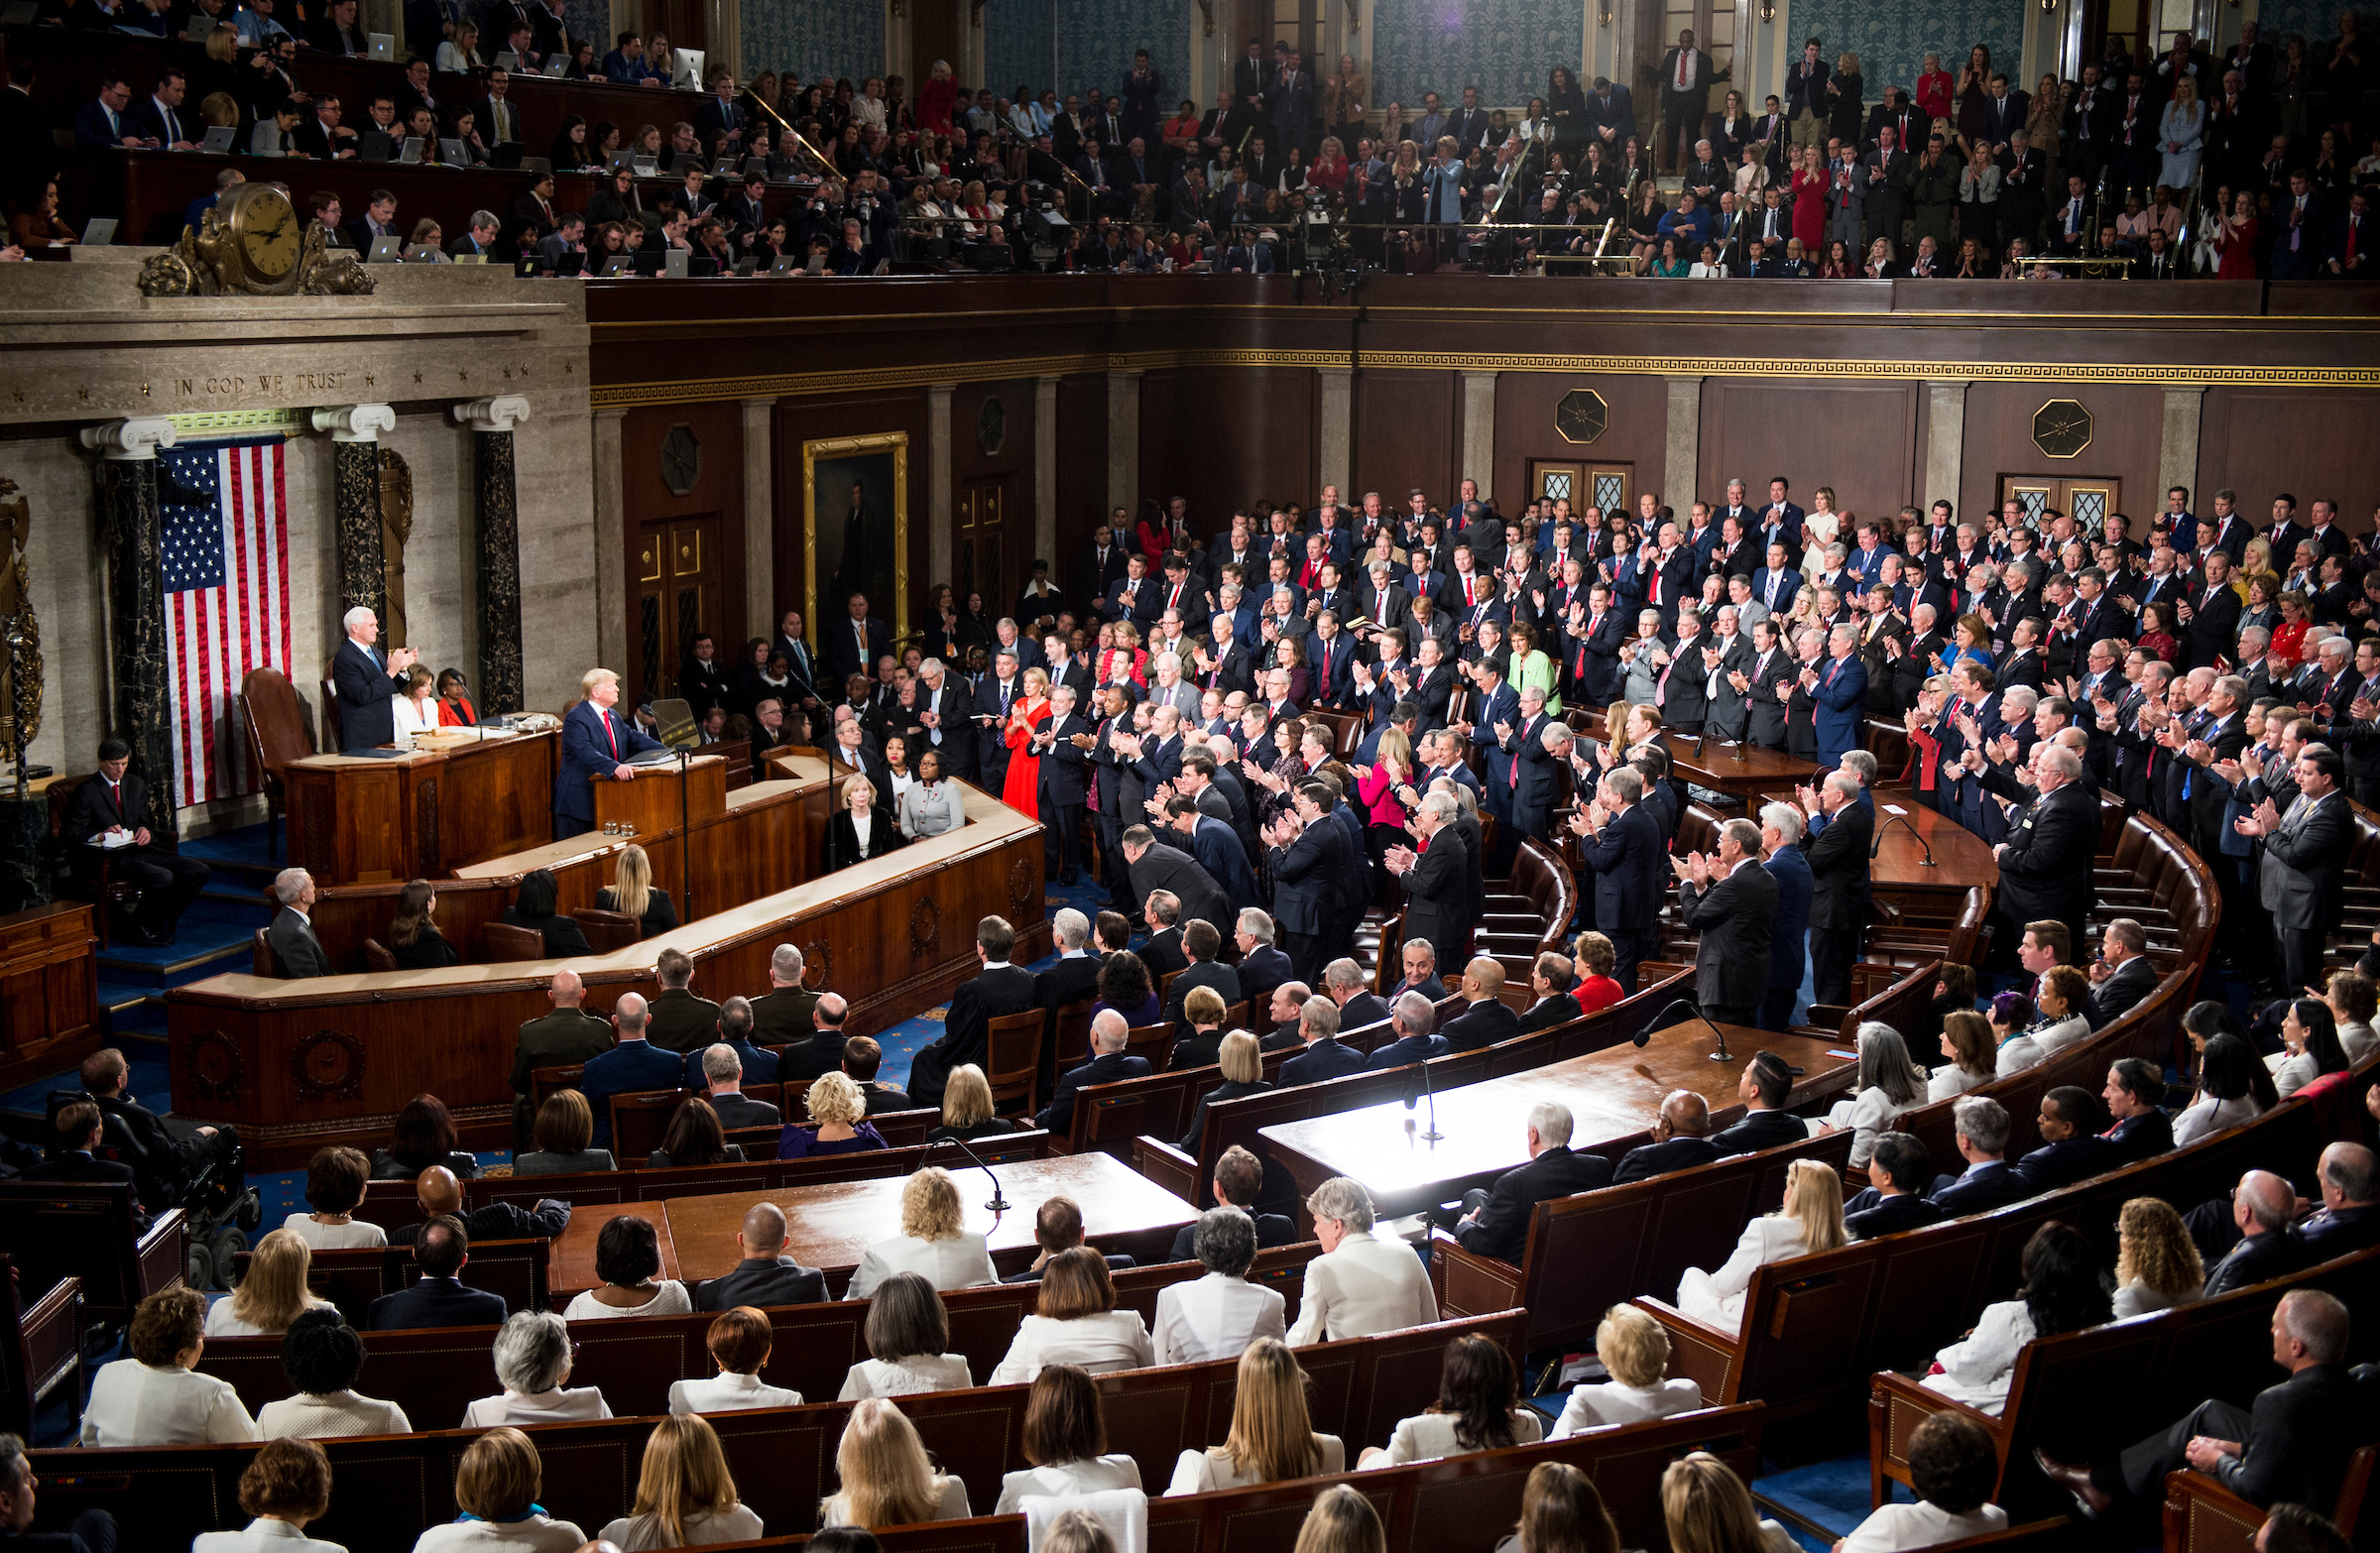 UNITED STATES - FEBRUARY 04: President Donald Trump deliver his State of the Union address to a joint session of Congress on Tuesday, February 4, 2020. (Photo by Caroline Brehman/CQ Roll Call)